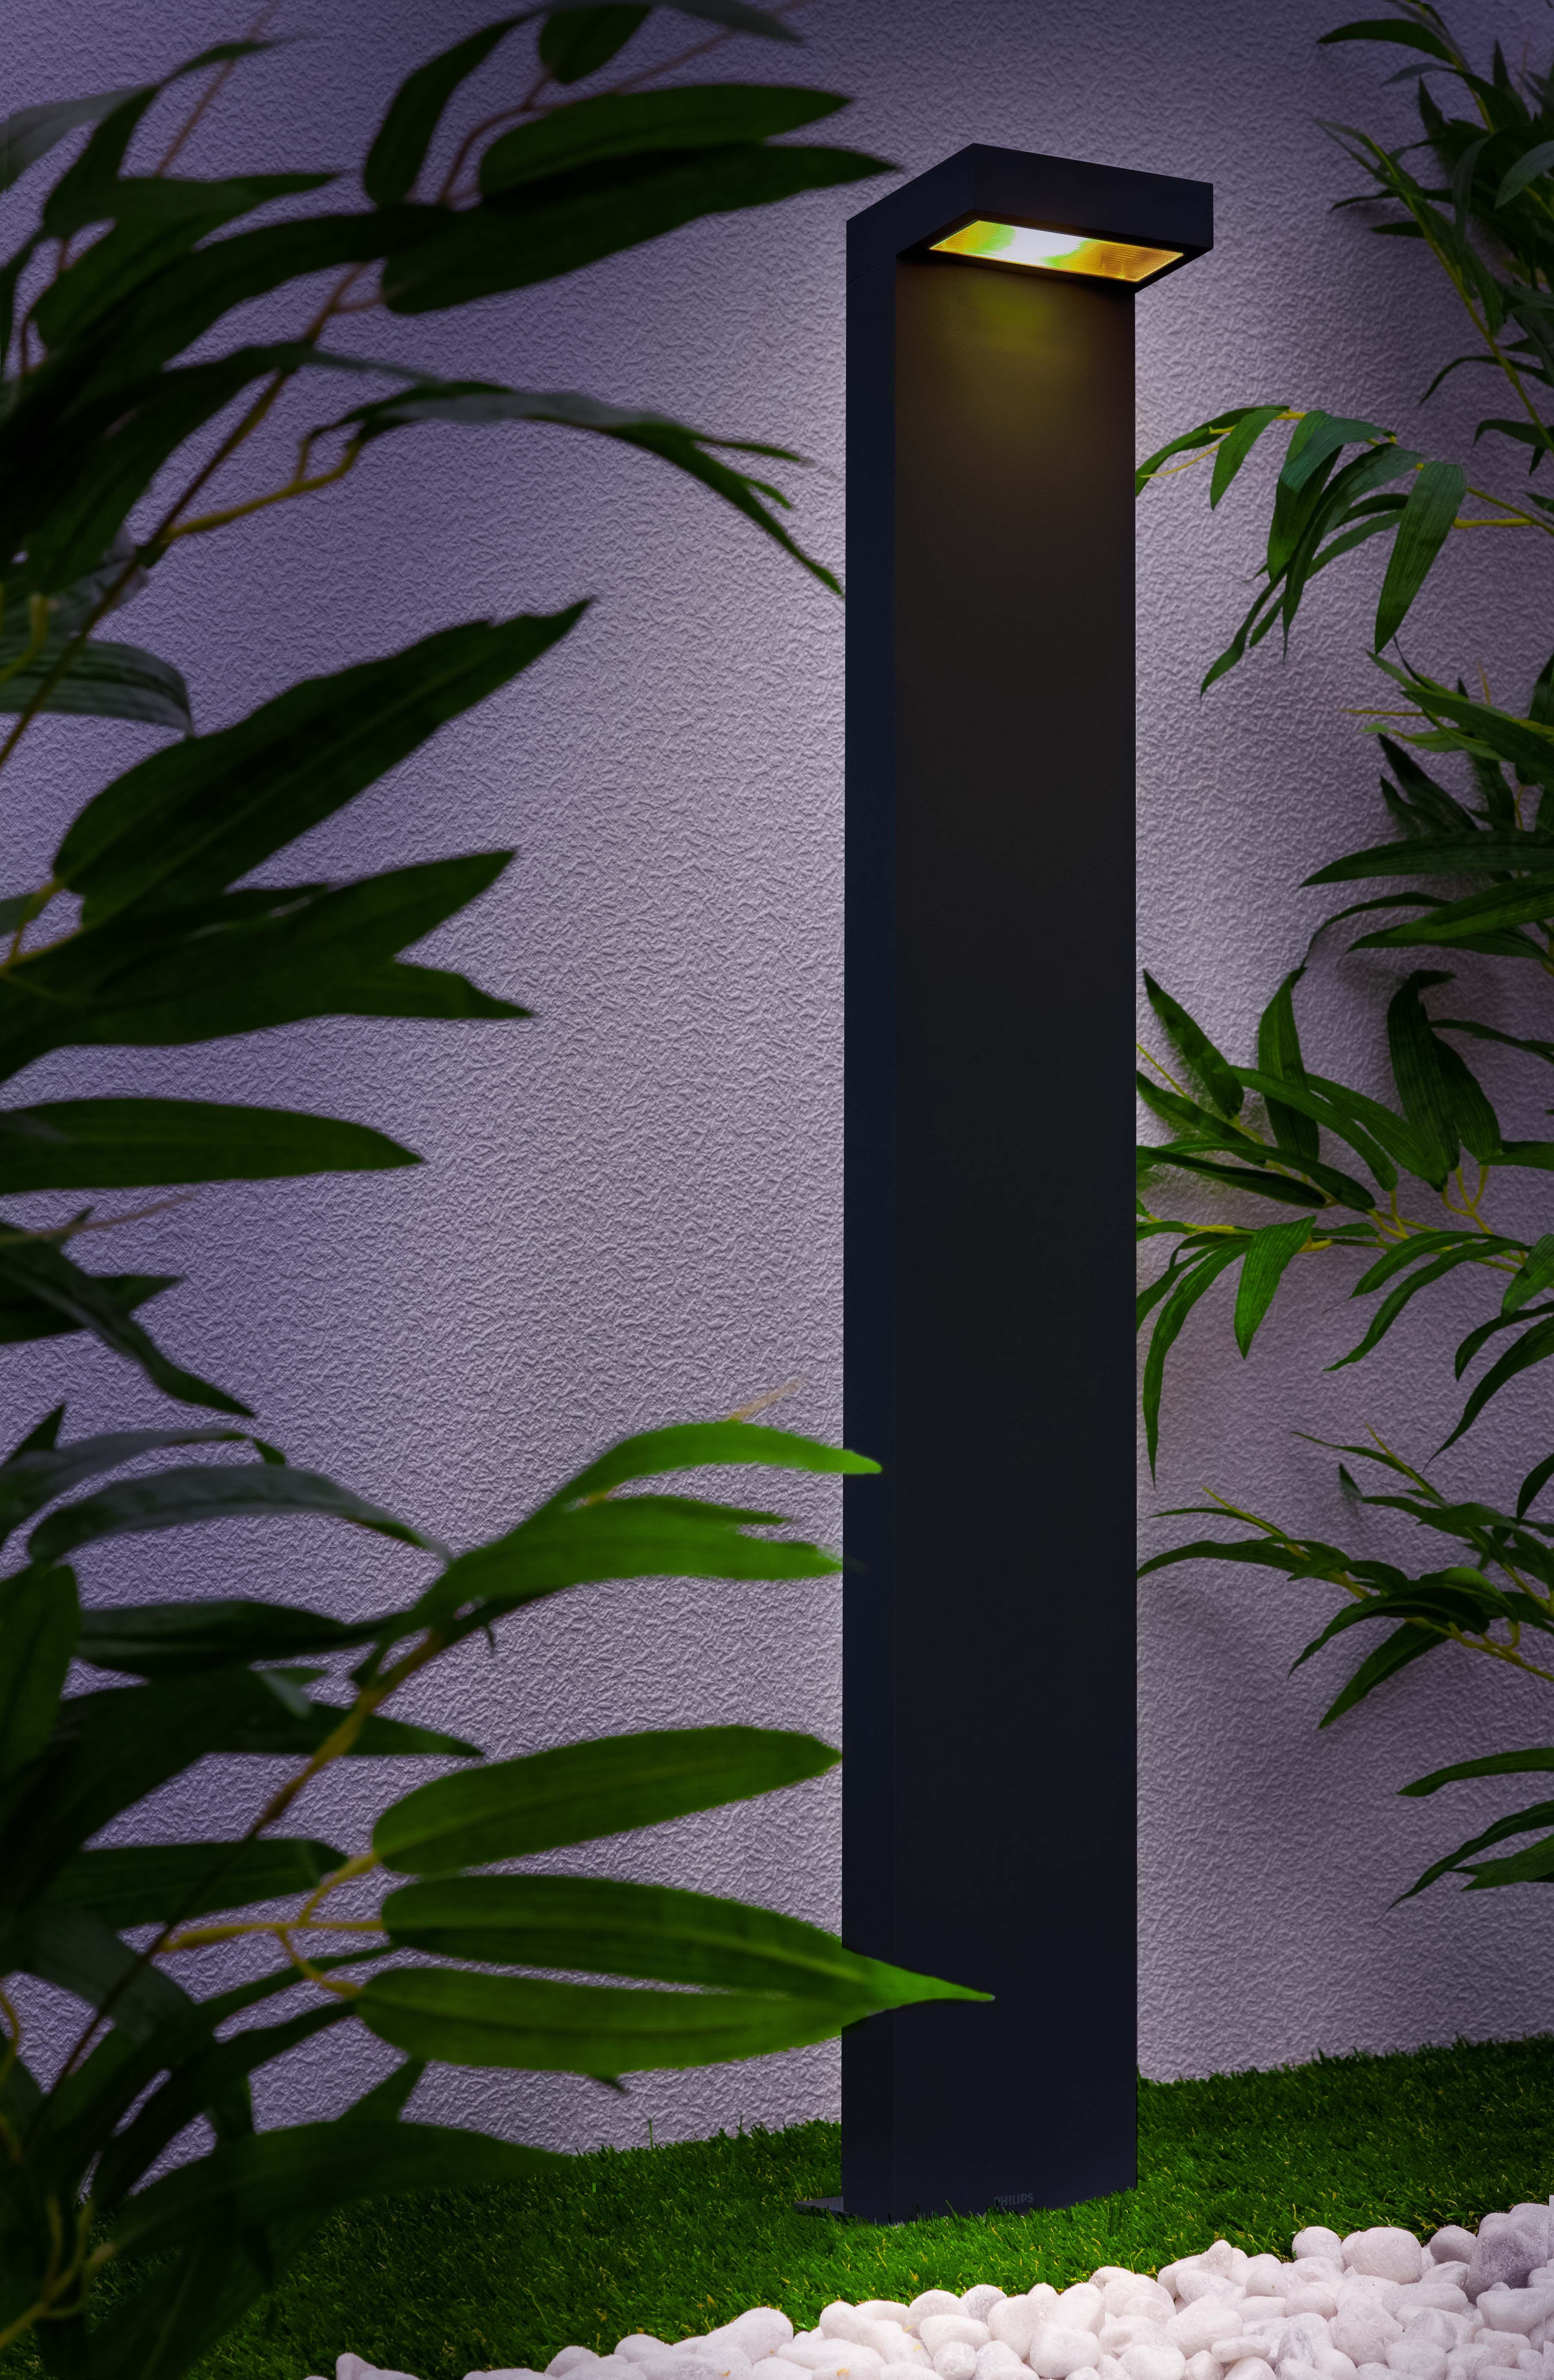 Philips Ledino Riverside Post Light Outdoor Lighting   In Amongst Plants Or  At Side F Driveway